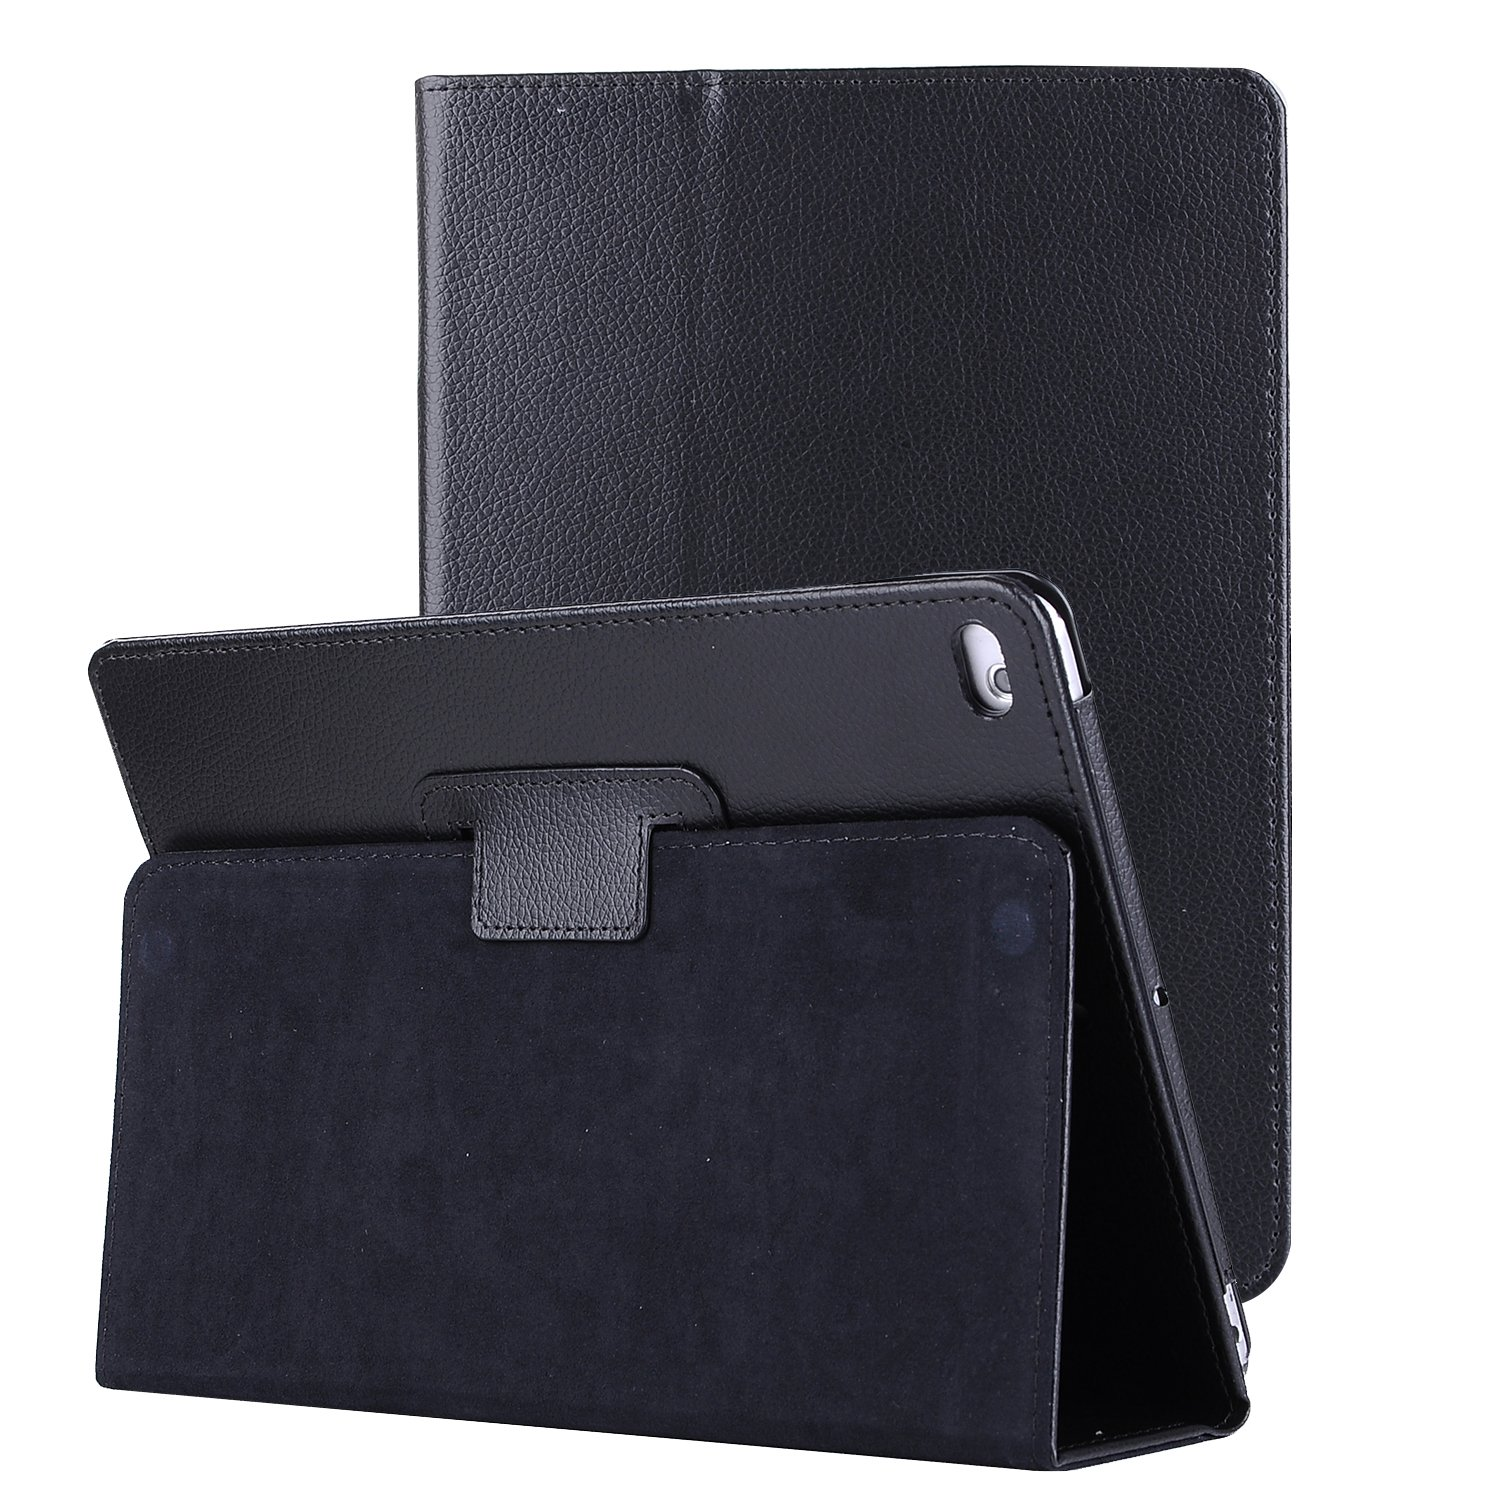 Case Foilo-Stand for Capa Apple Tablet Funda 7th A2200 A2232 Cover A2197 iPad